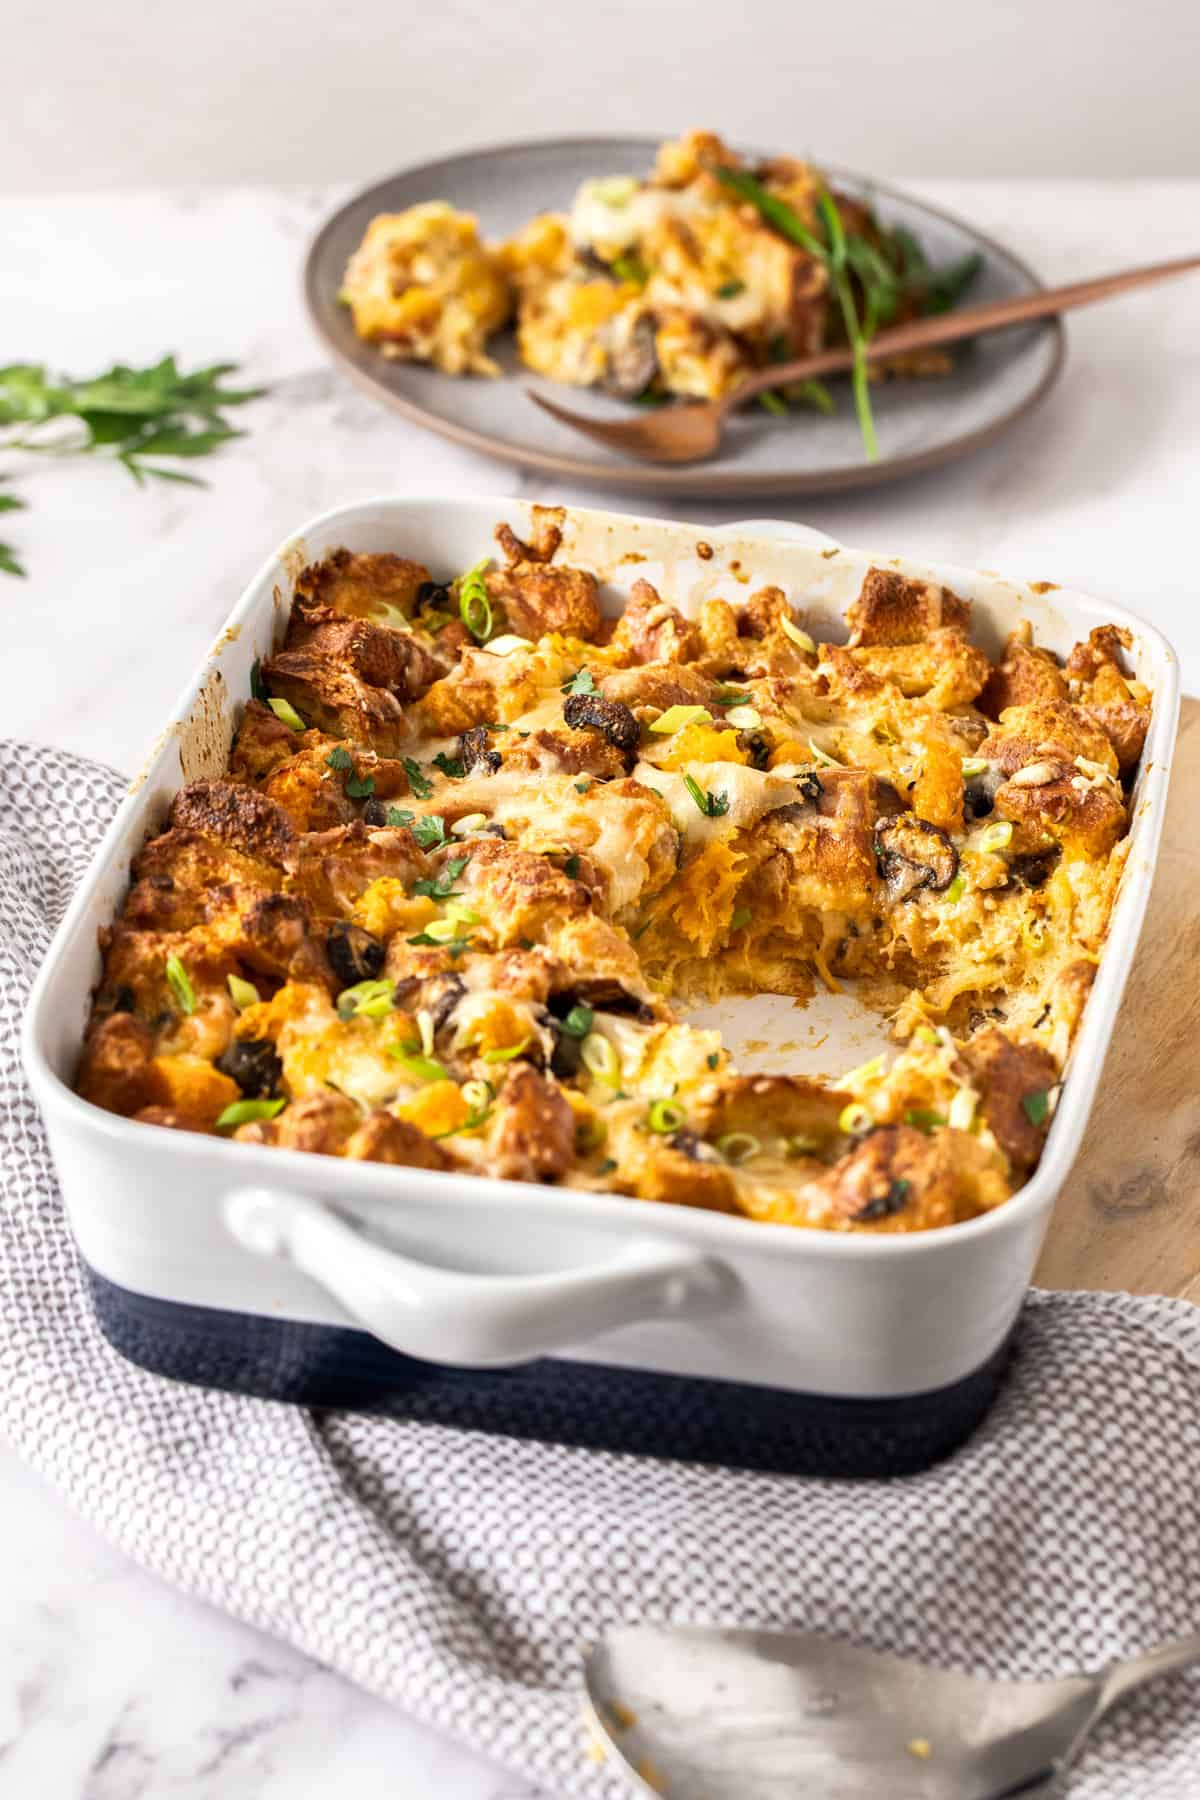 A large white dish of savory bread pudding with a scoop of the pudding on a plate behind the dish